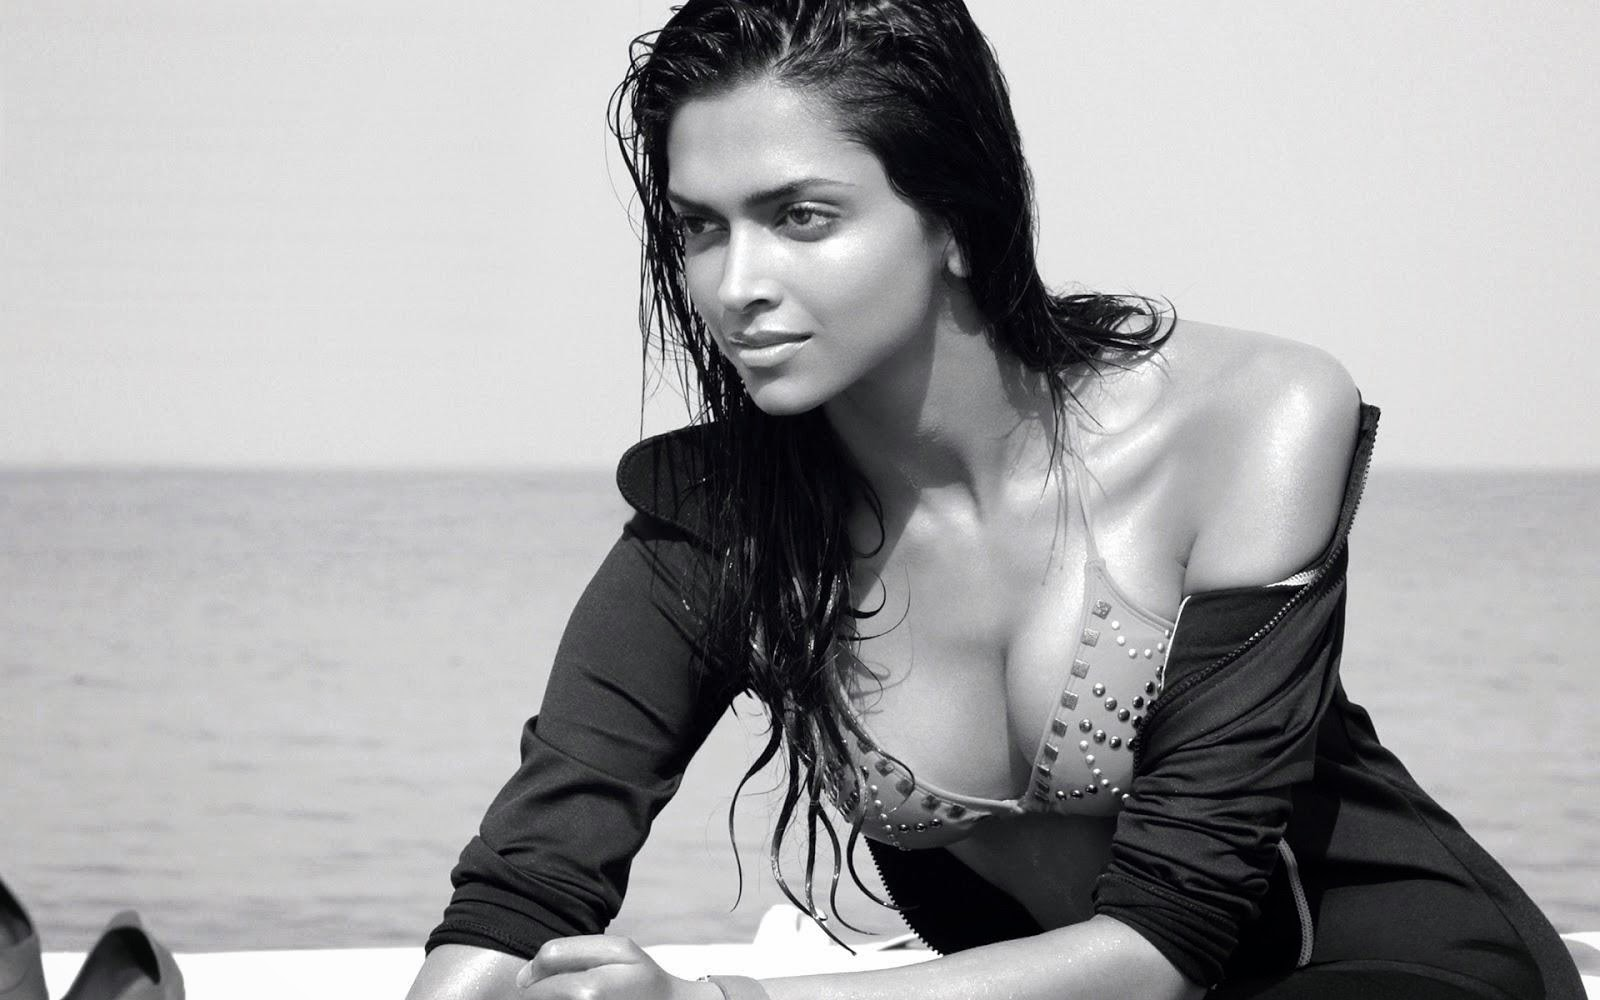 Sexy Hot Pics Of Deepika Padukone